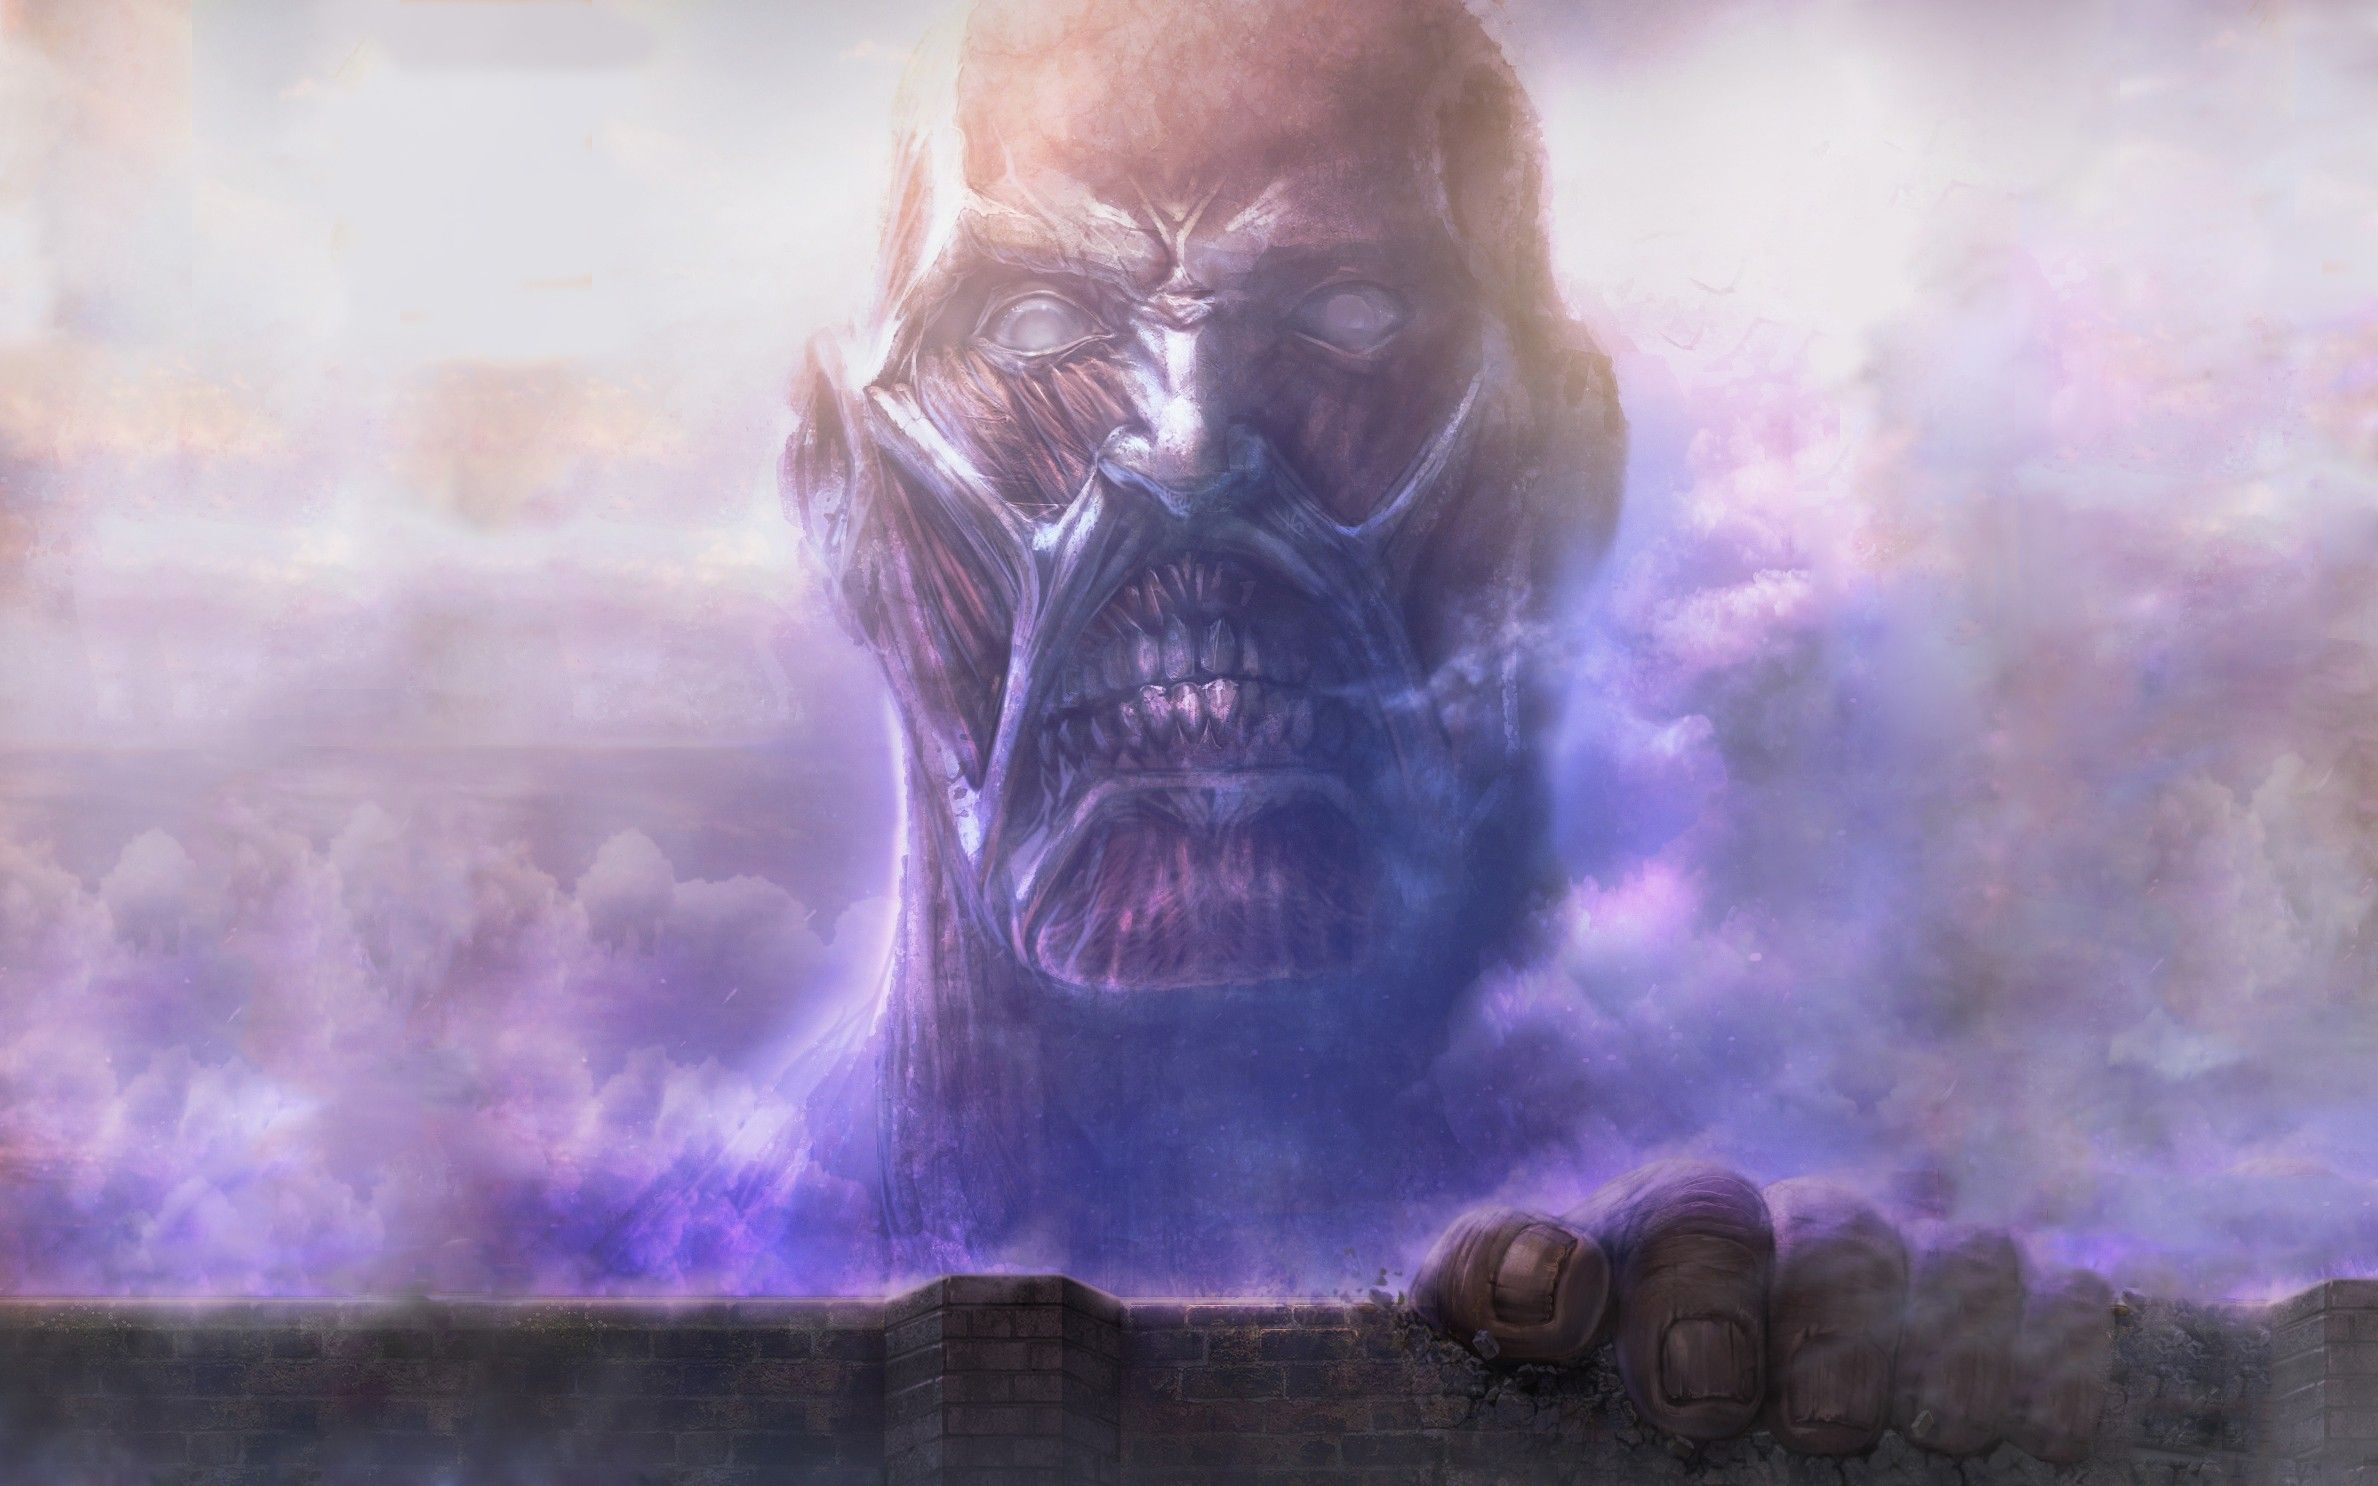 Colossal Titan Computer Wallpapers Desktop Backgrounds 2378x1486 Id 612514 Attack On Titan Attack On Titan Anime Titans